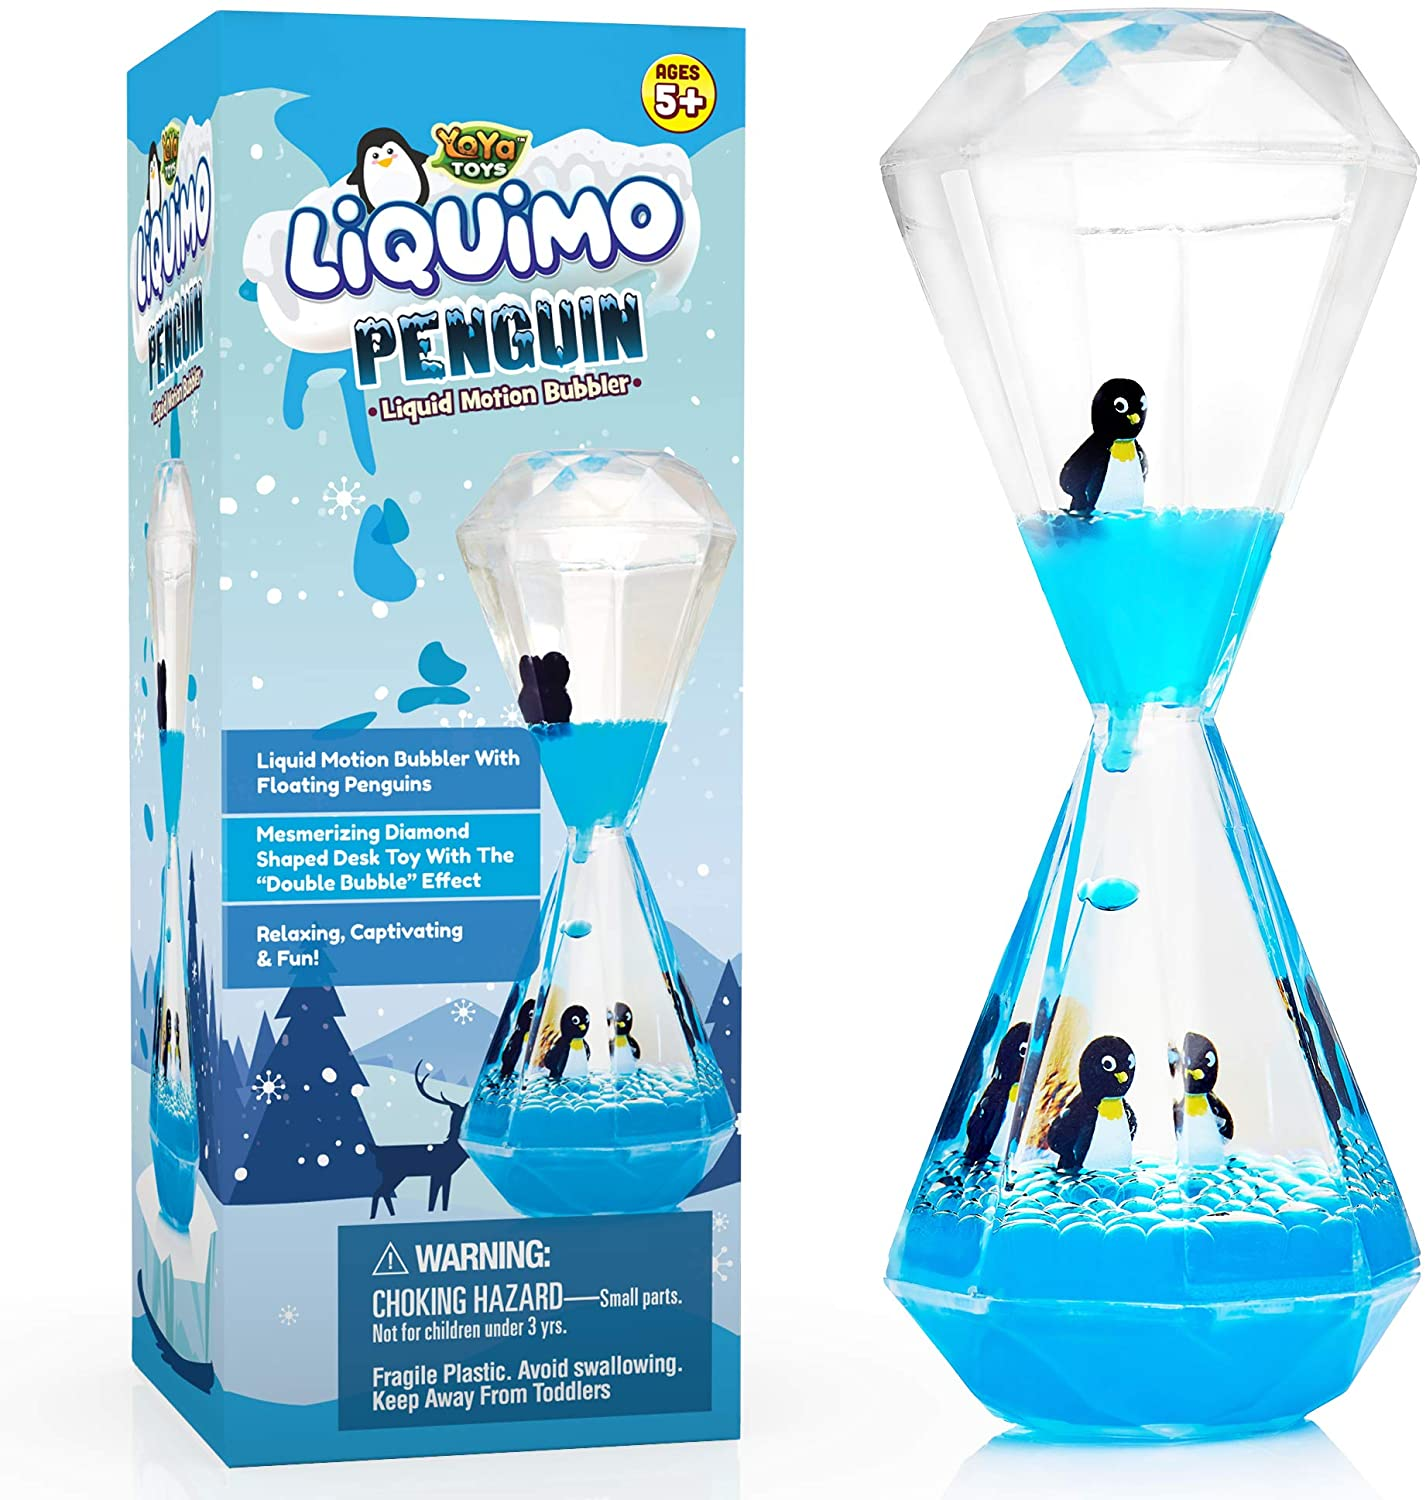 YoYa Toys Liquimo Penguin - Liquid Motion Bubbler for Kids and Adults - Penguin Theme - Satisfying Sensory Toys for Stress and Anxiety Relief - Fidget Toy Can Be Used as a Colorful Kitchen Timer